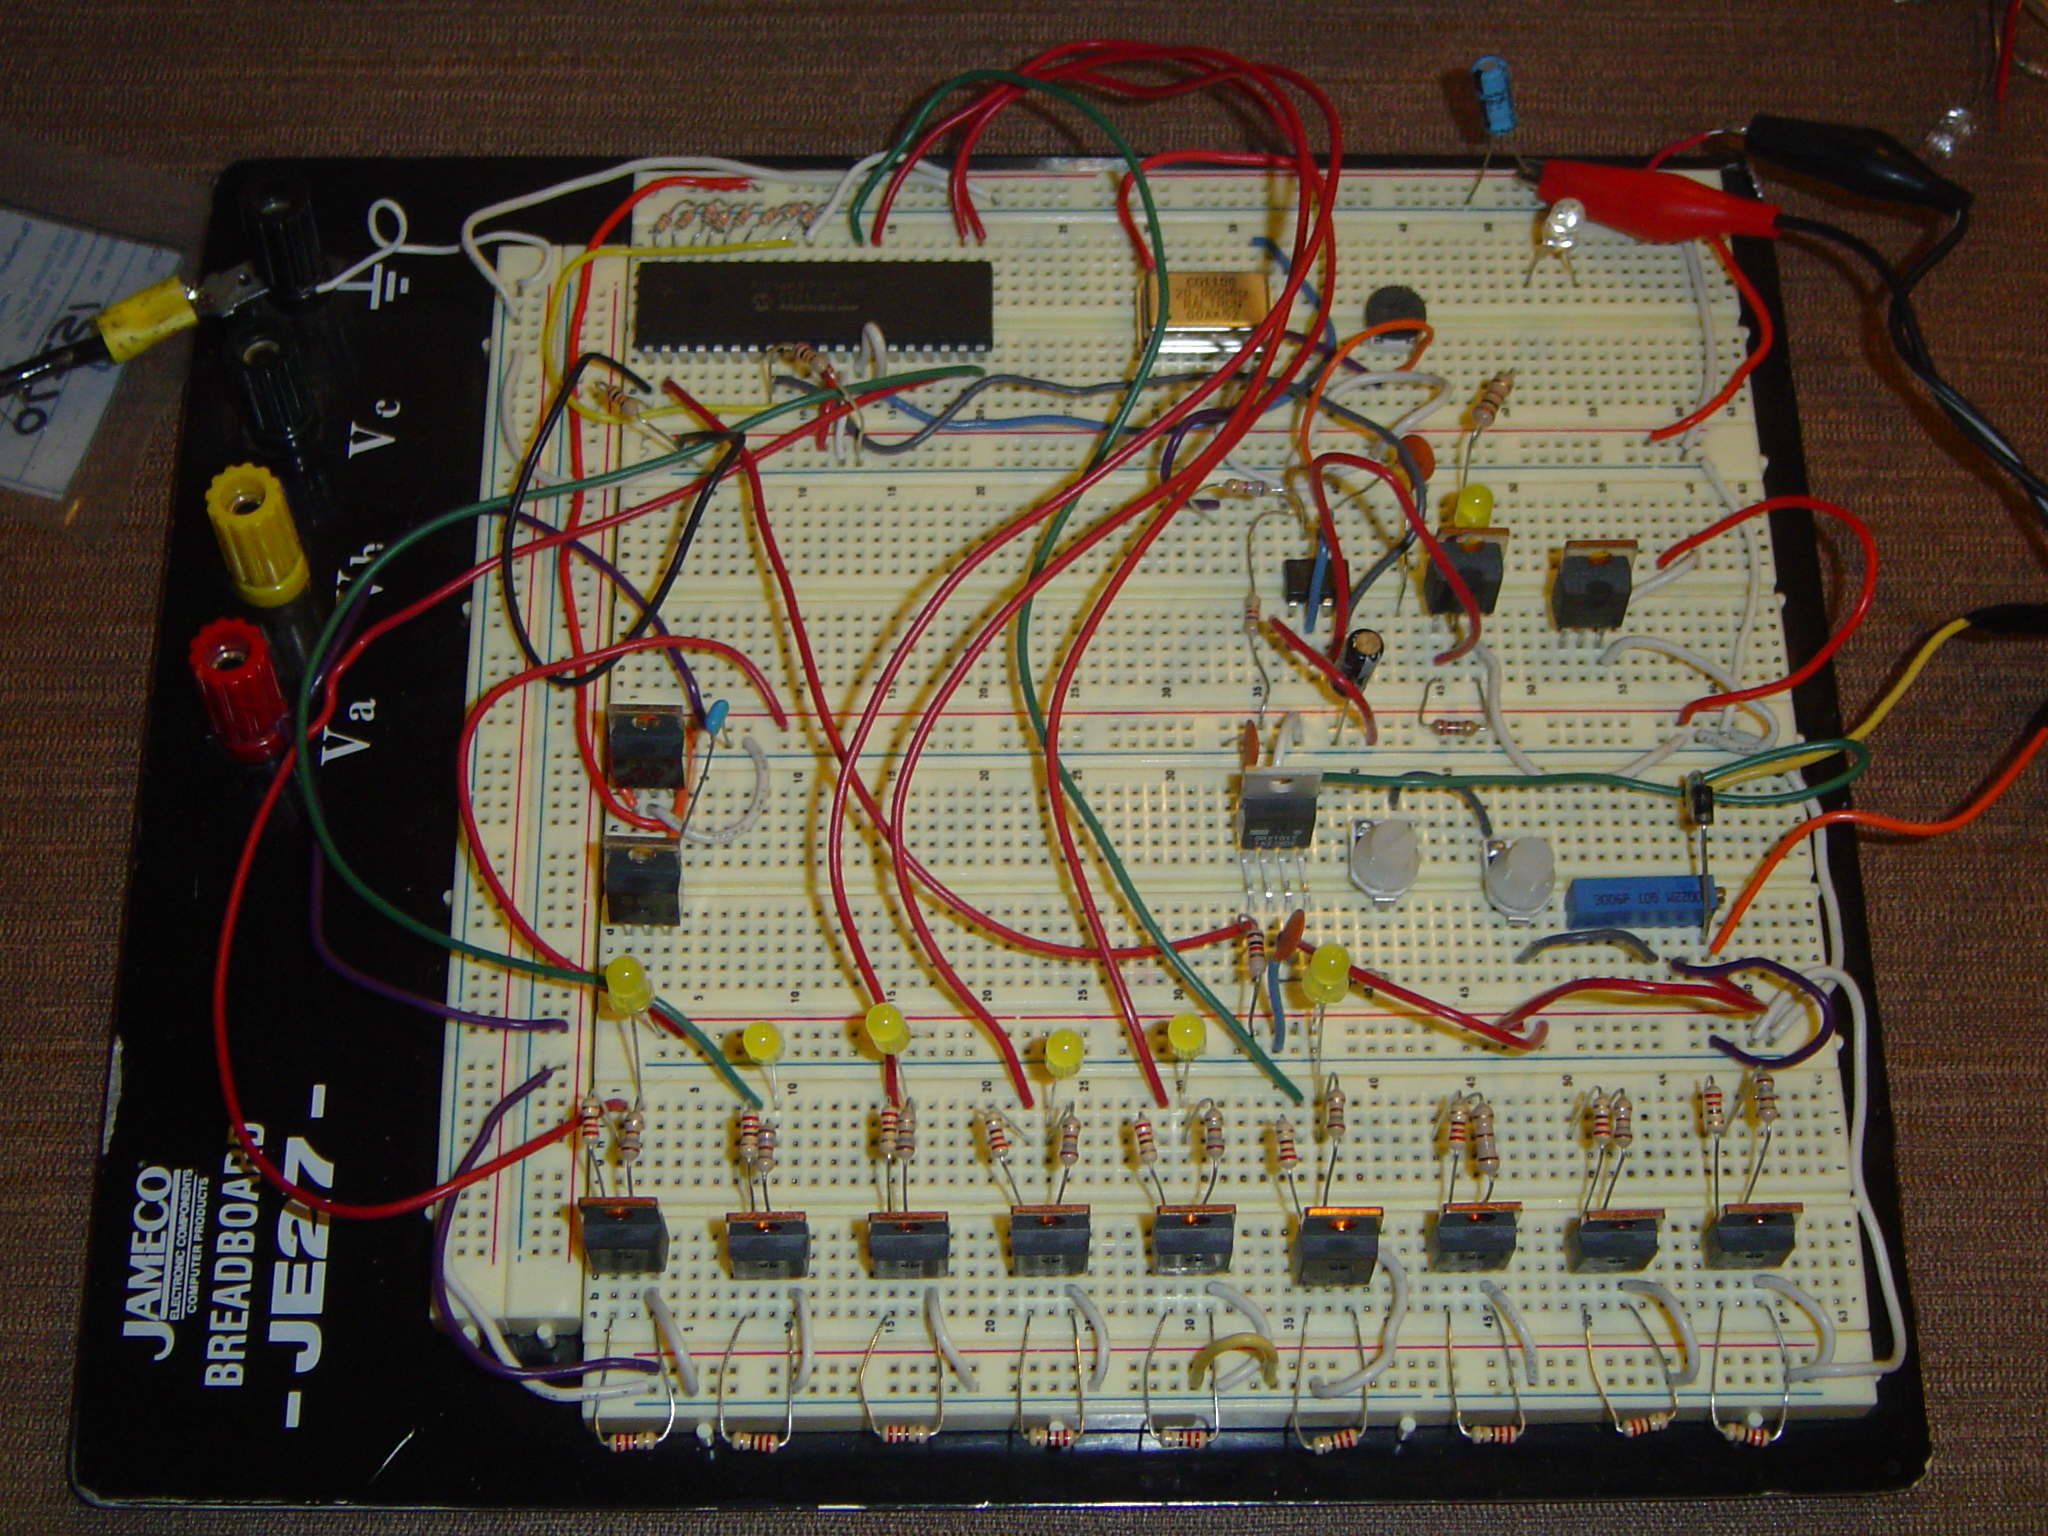 Picture of Microcontrollers and Circuit